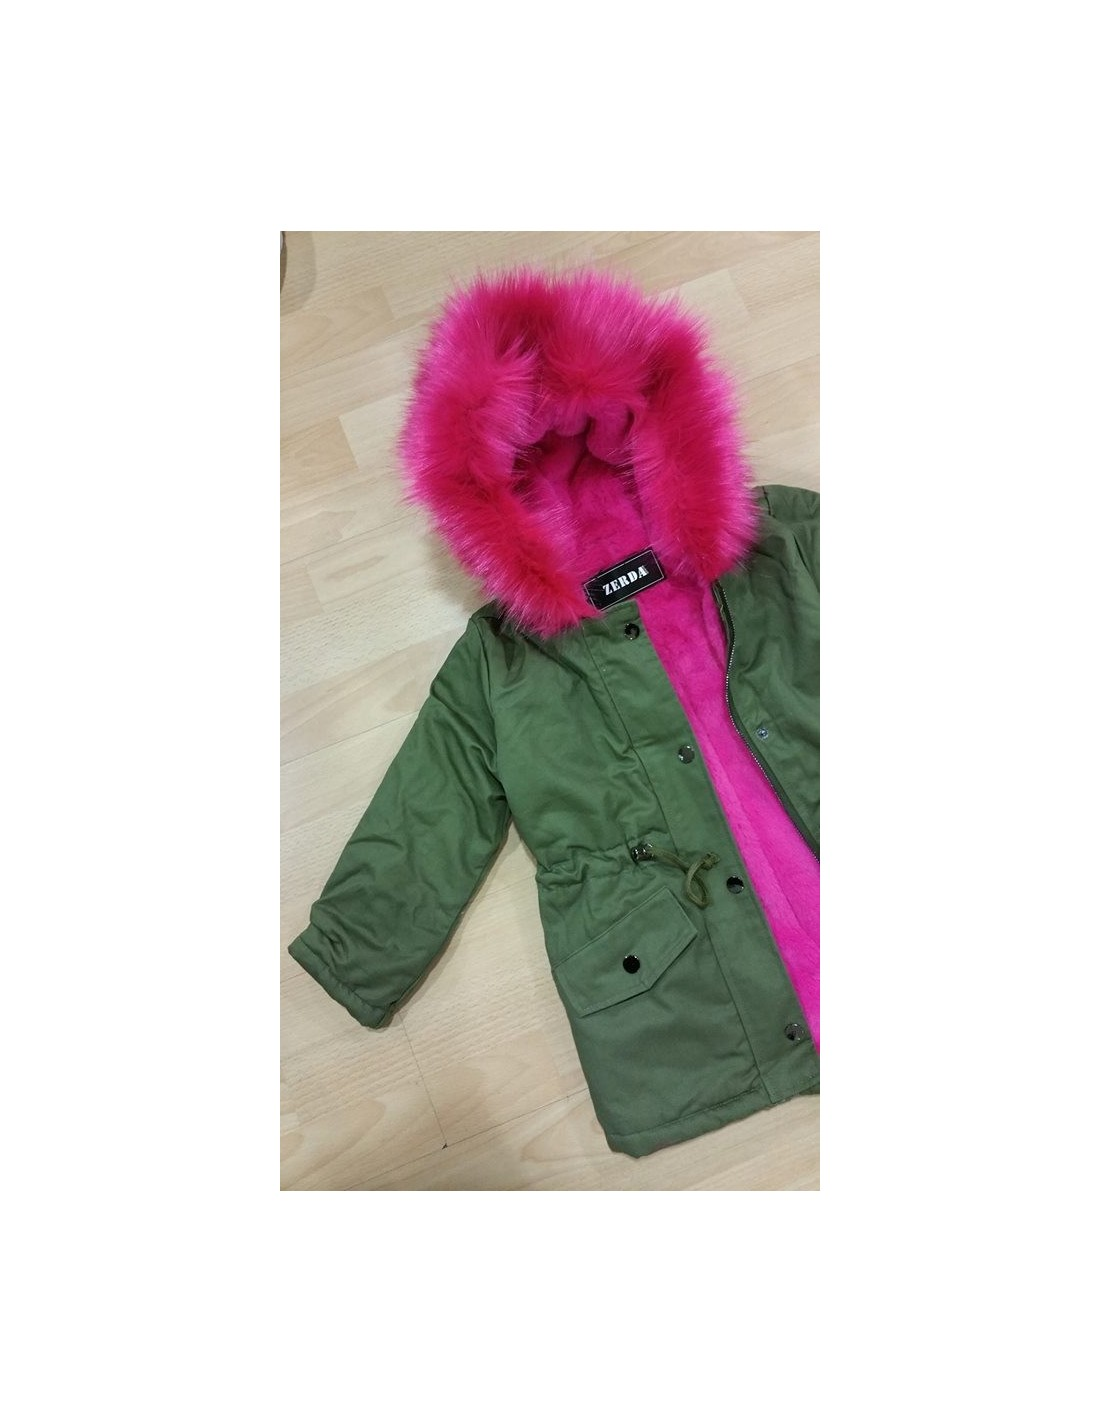 parka kaki fourrure fushia 2 a 14 ans mode parka fashion. Black Bedroom Furniture Sets. Home Design Ideas